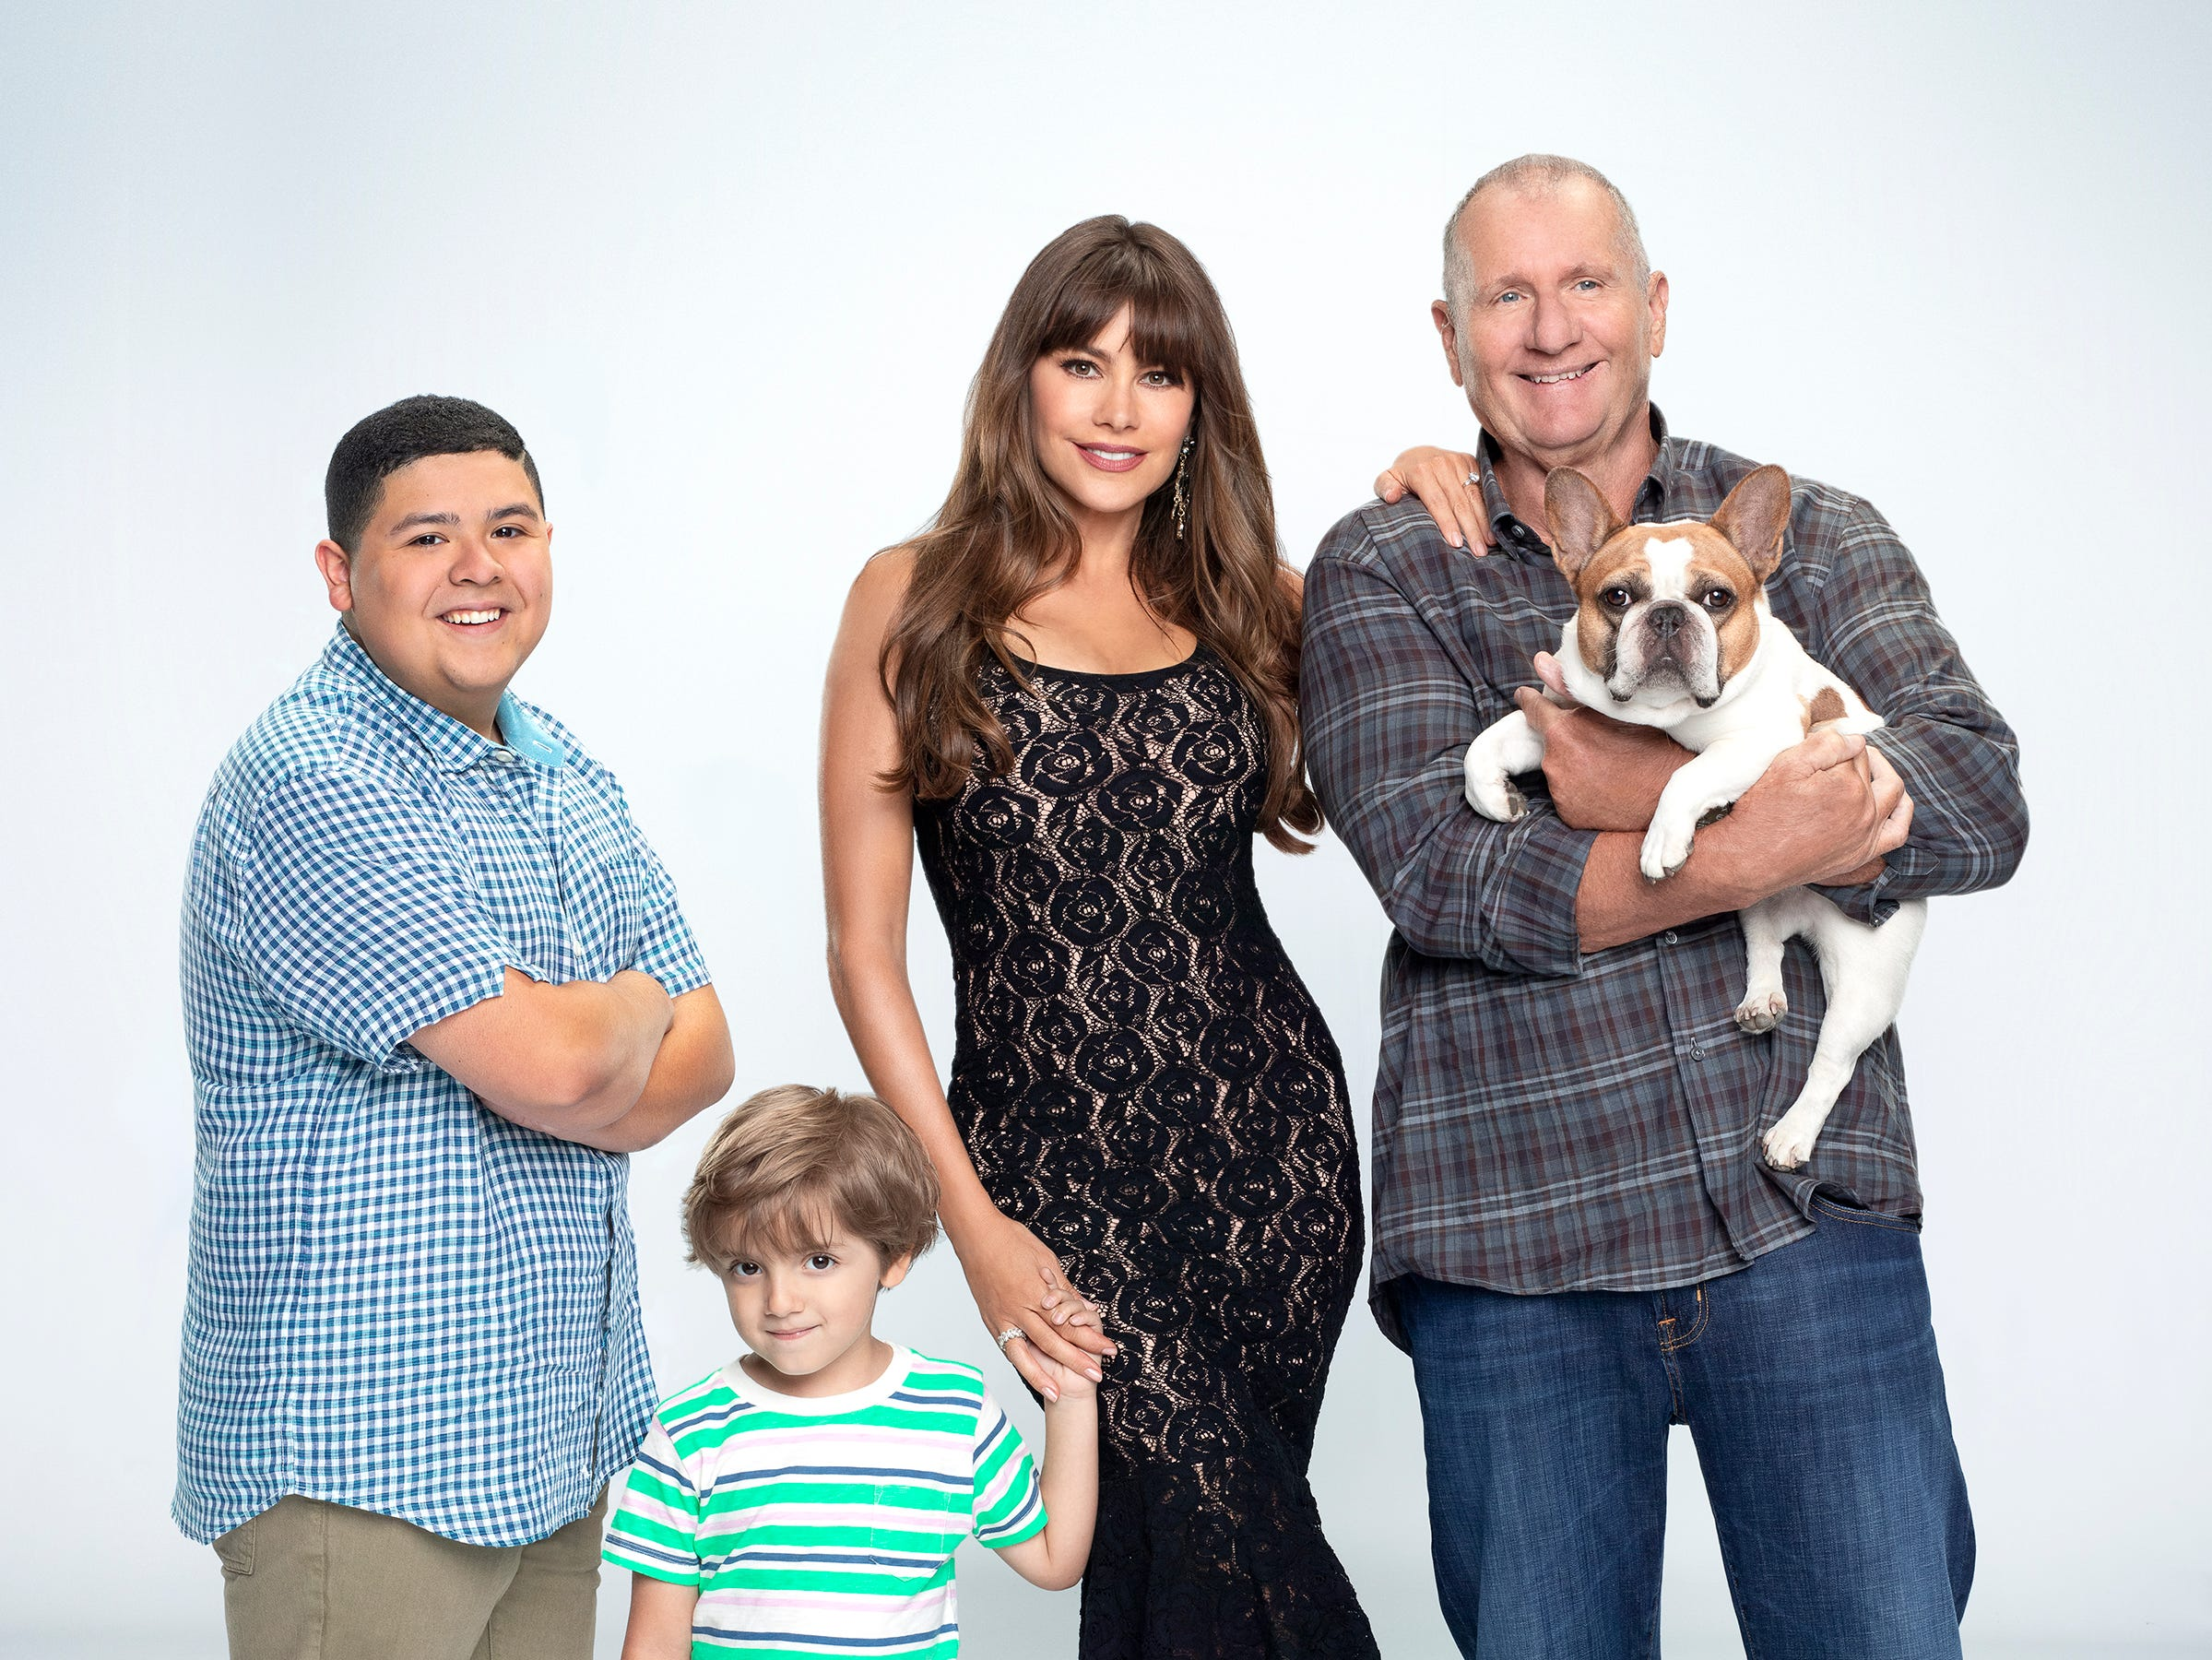 Rico Rodriguez as Manny, Jeremy Maguire as Joe, Sofia Vergara as Gloria and Ed O'Neill as Jay (with Brigitte as Stella) in the 10th season of the show.